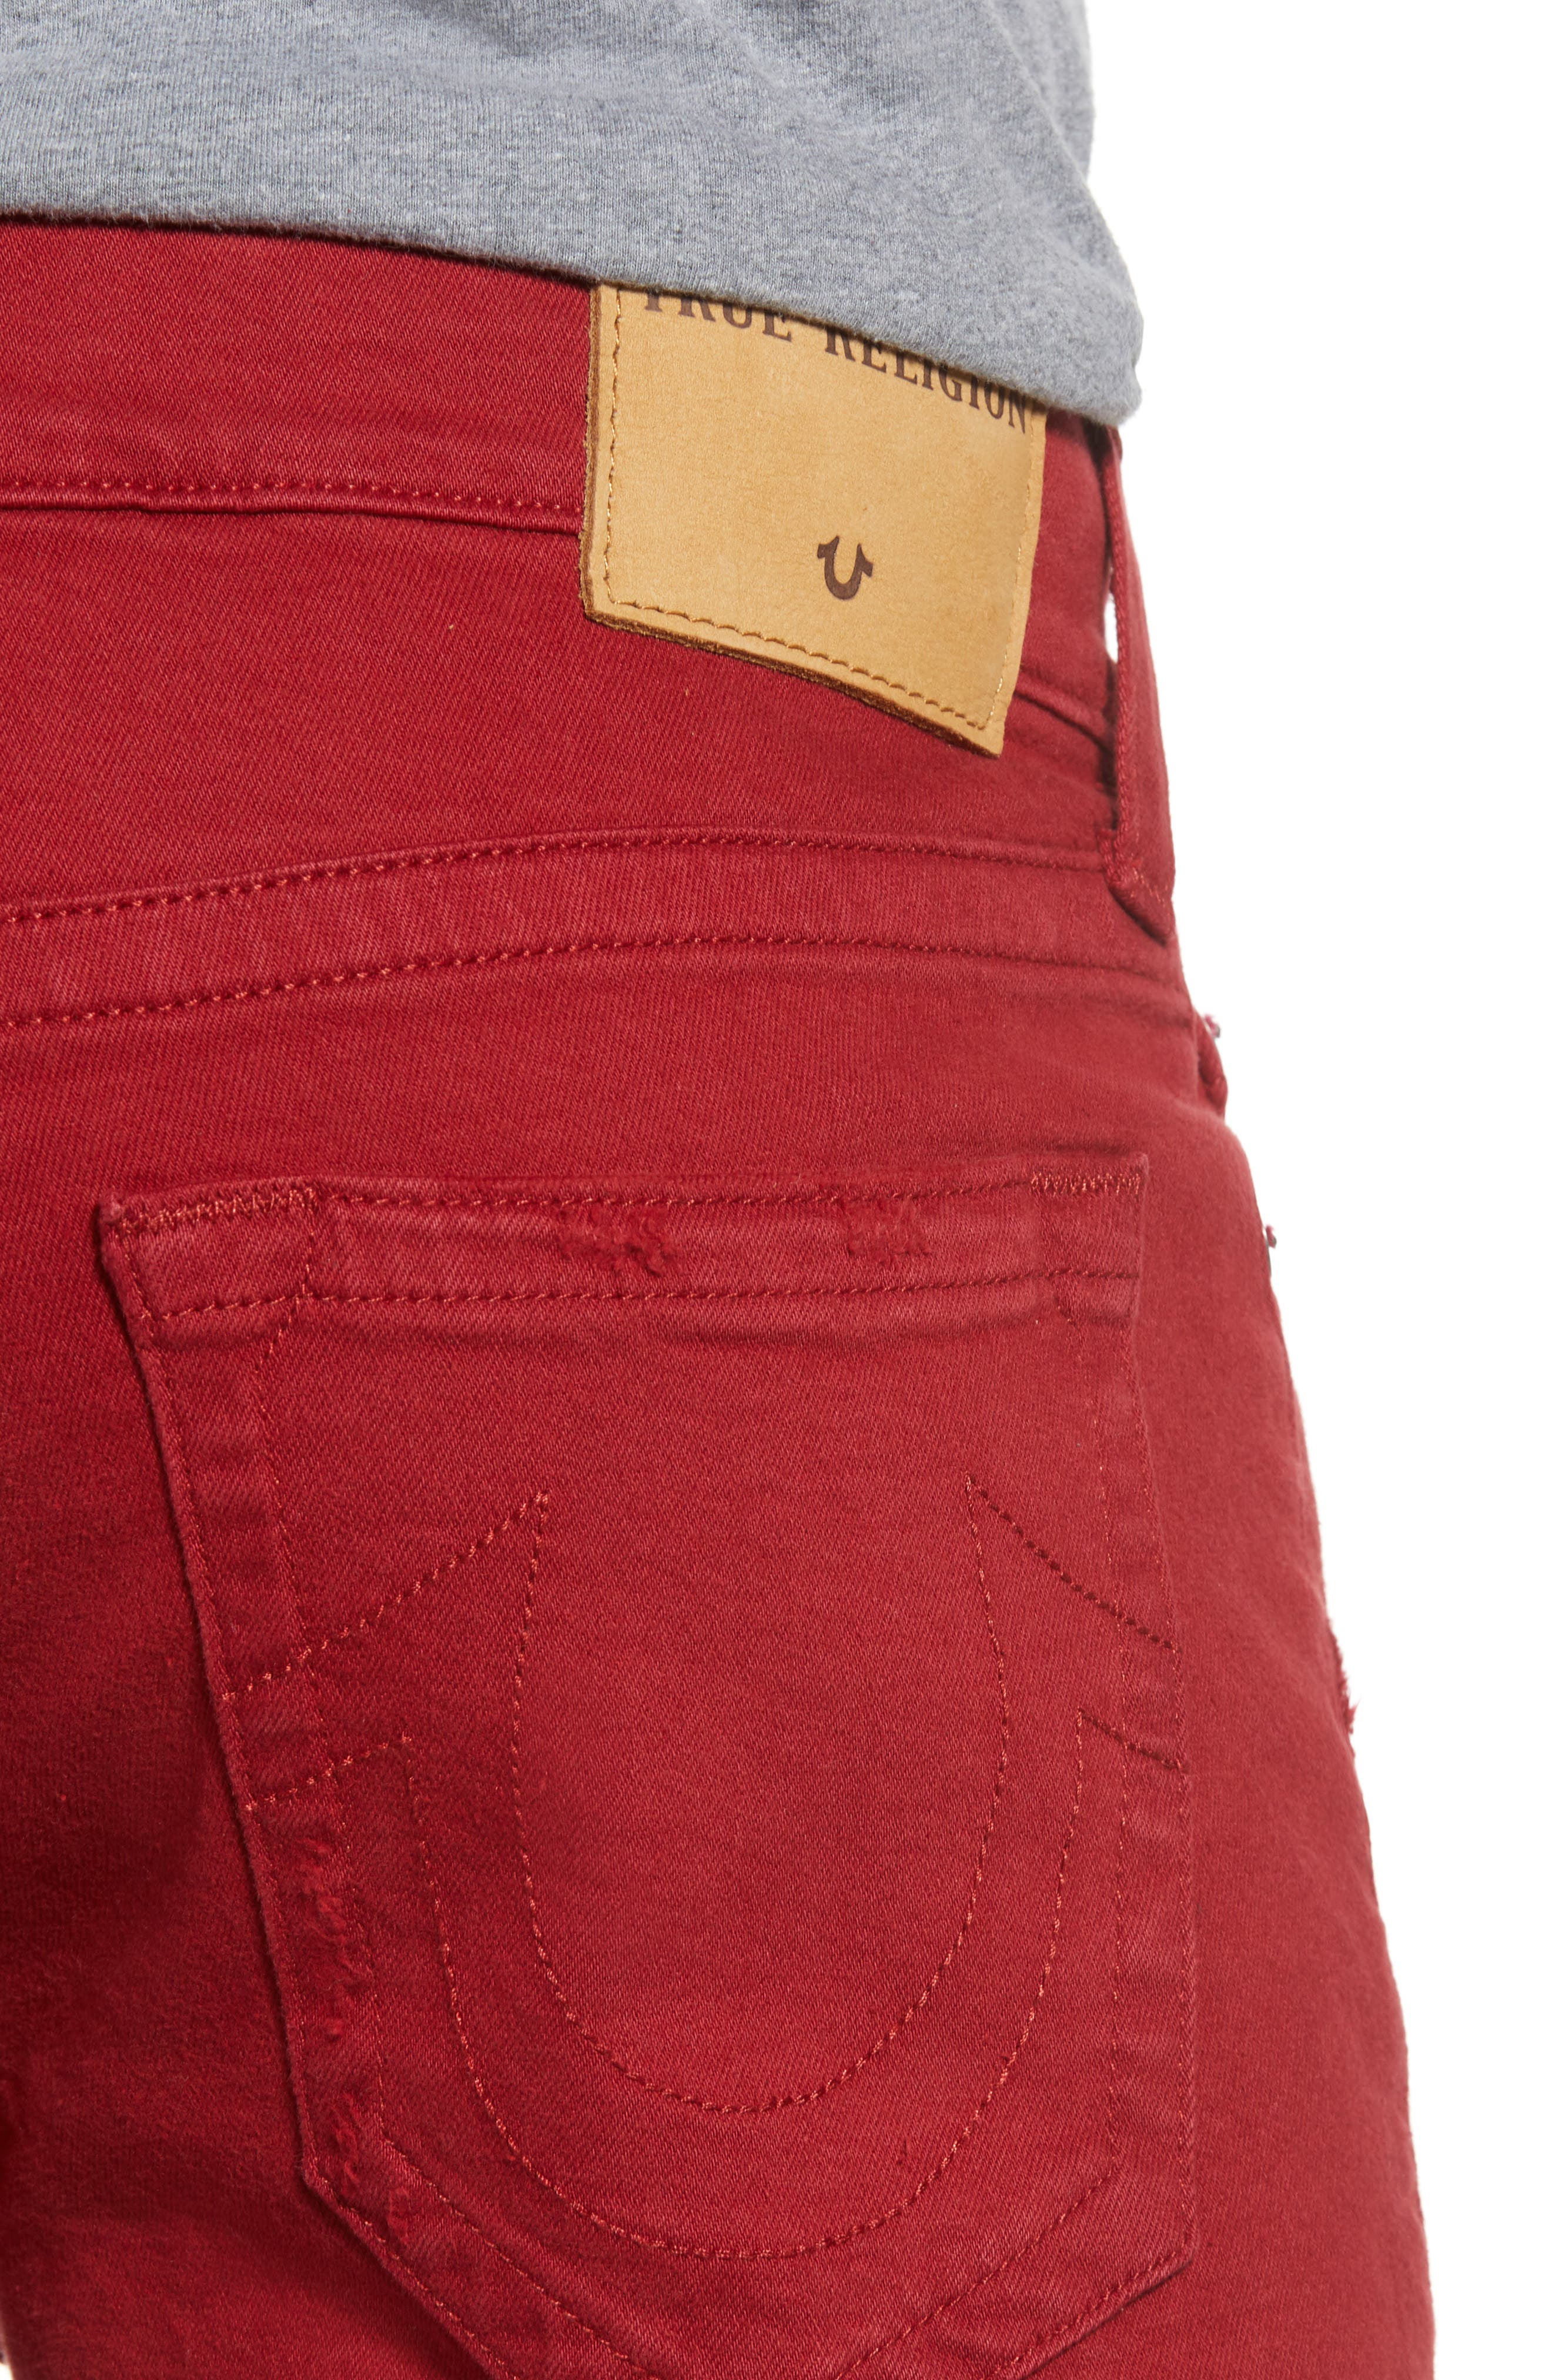 Ricky Relaxed Fit Shorts,                             Alternate thumbnail 4, color,                             FIRECRACKER RED